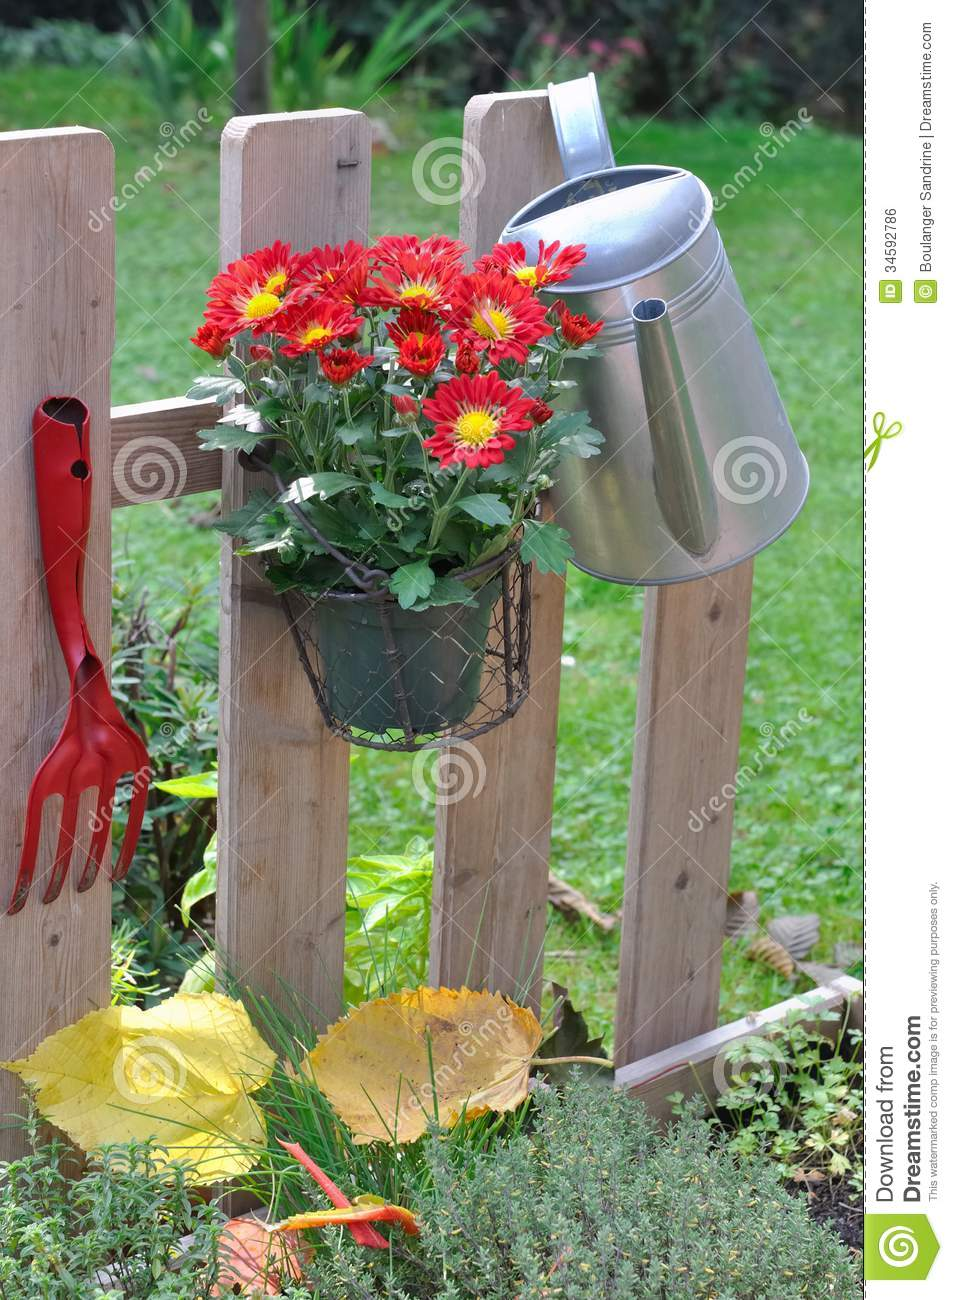 Fence for garden royalty free stock image image 34592786 - Flower pots to hang on fence ...